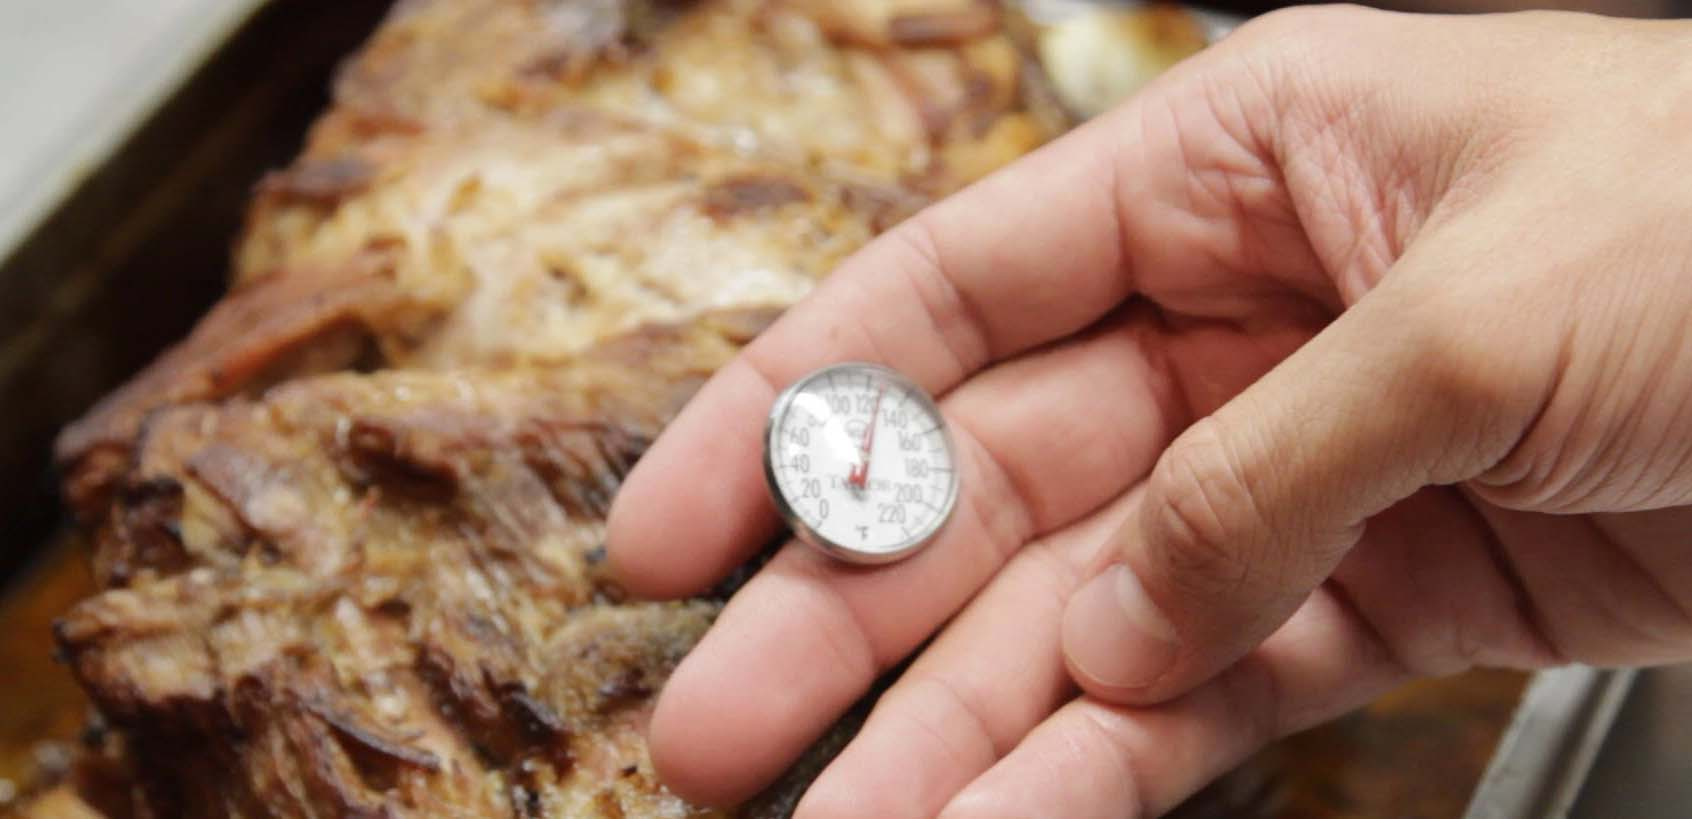 How To Calibrate A Meat Thermometer | Experts Advise